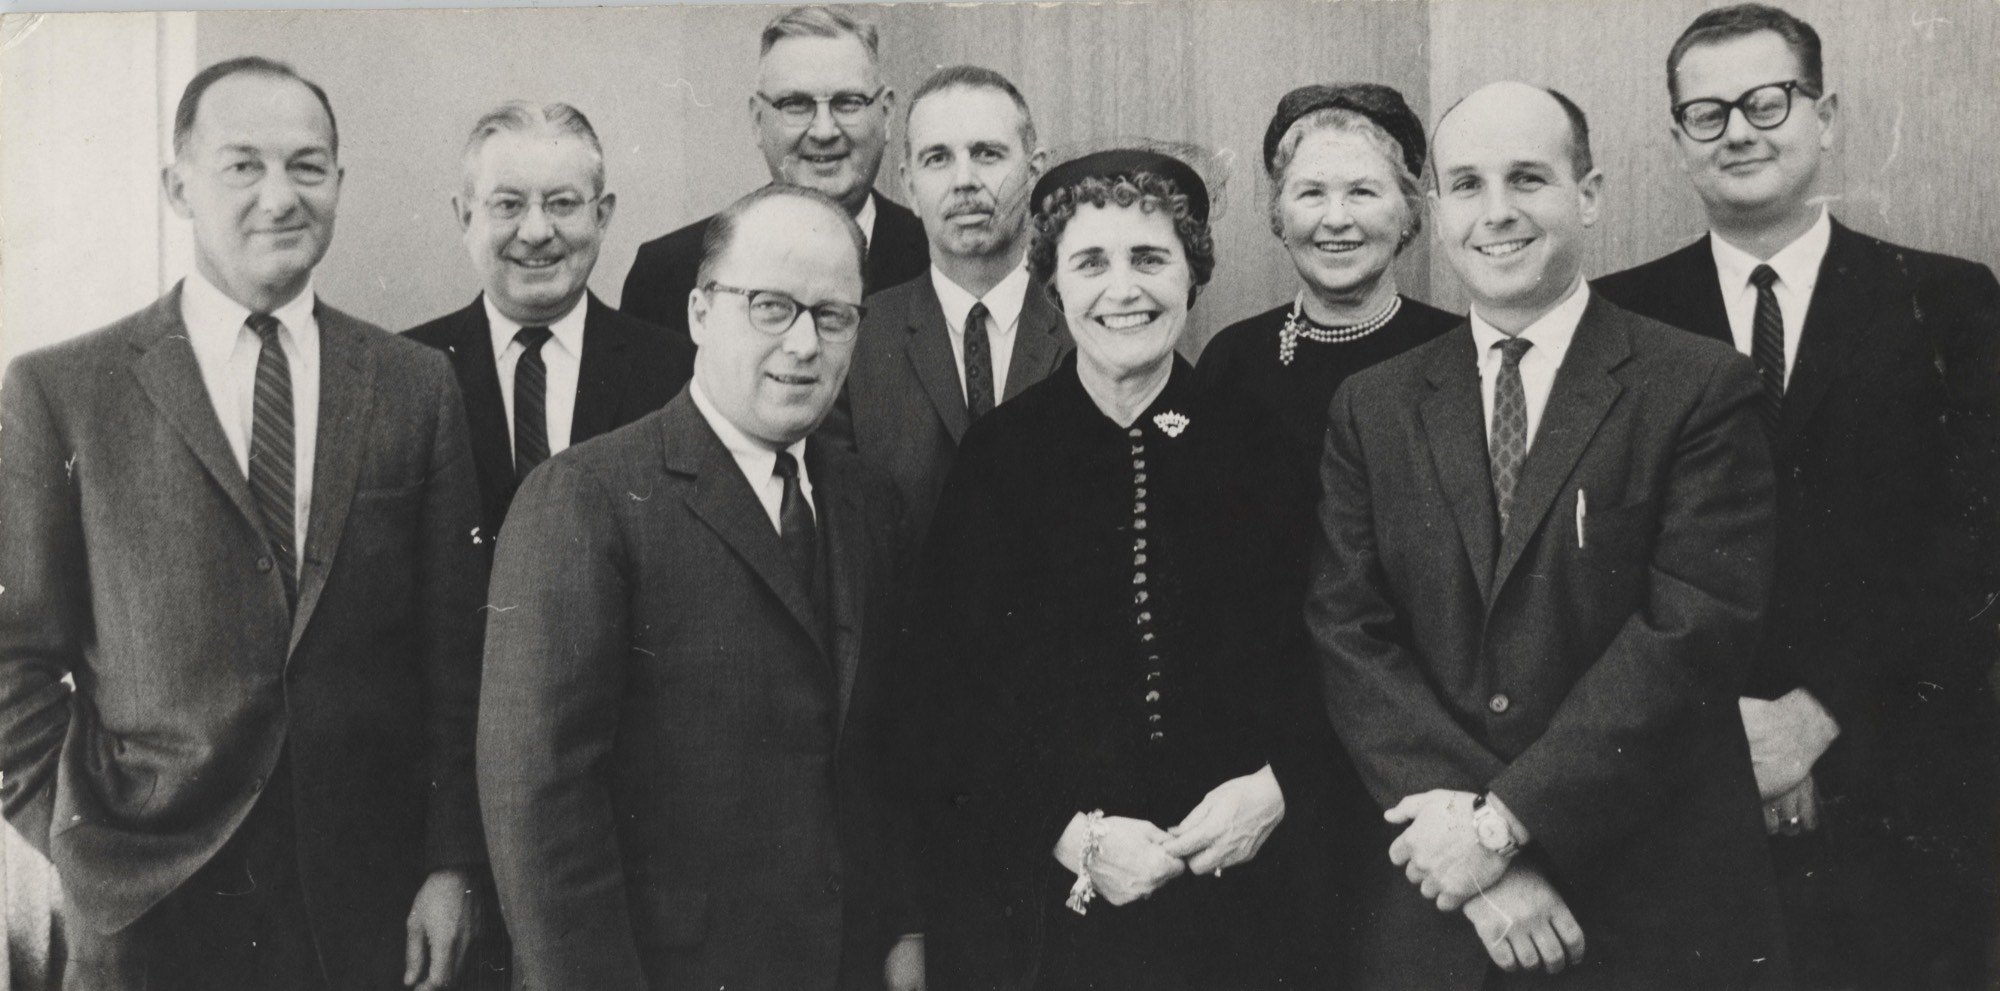 Members of the first Board of Control: l to r back row-- Edward J. Frey, James Copeland, Dale Stafford, William Kirkpatrick, Icie Macy Hoobler, Kenneth Robinson. l to r front row--Arnold Ott, Grace Kistler, and L. William Seidman, Chair. The nine member board was later reduced to eight, 1960.